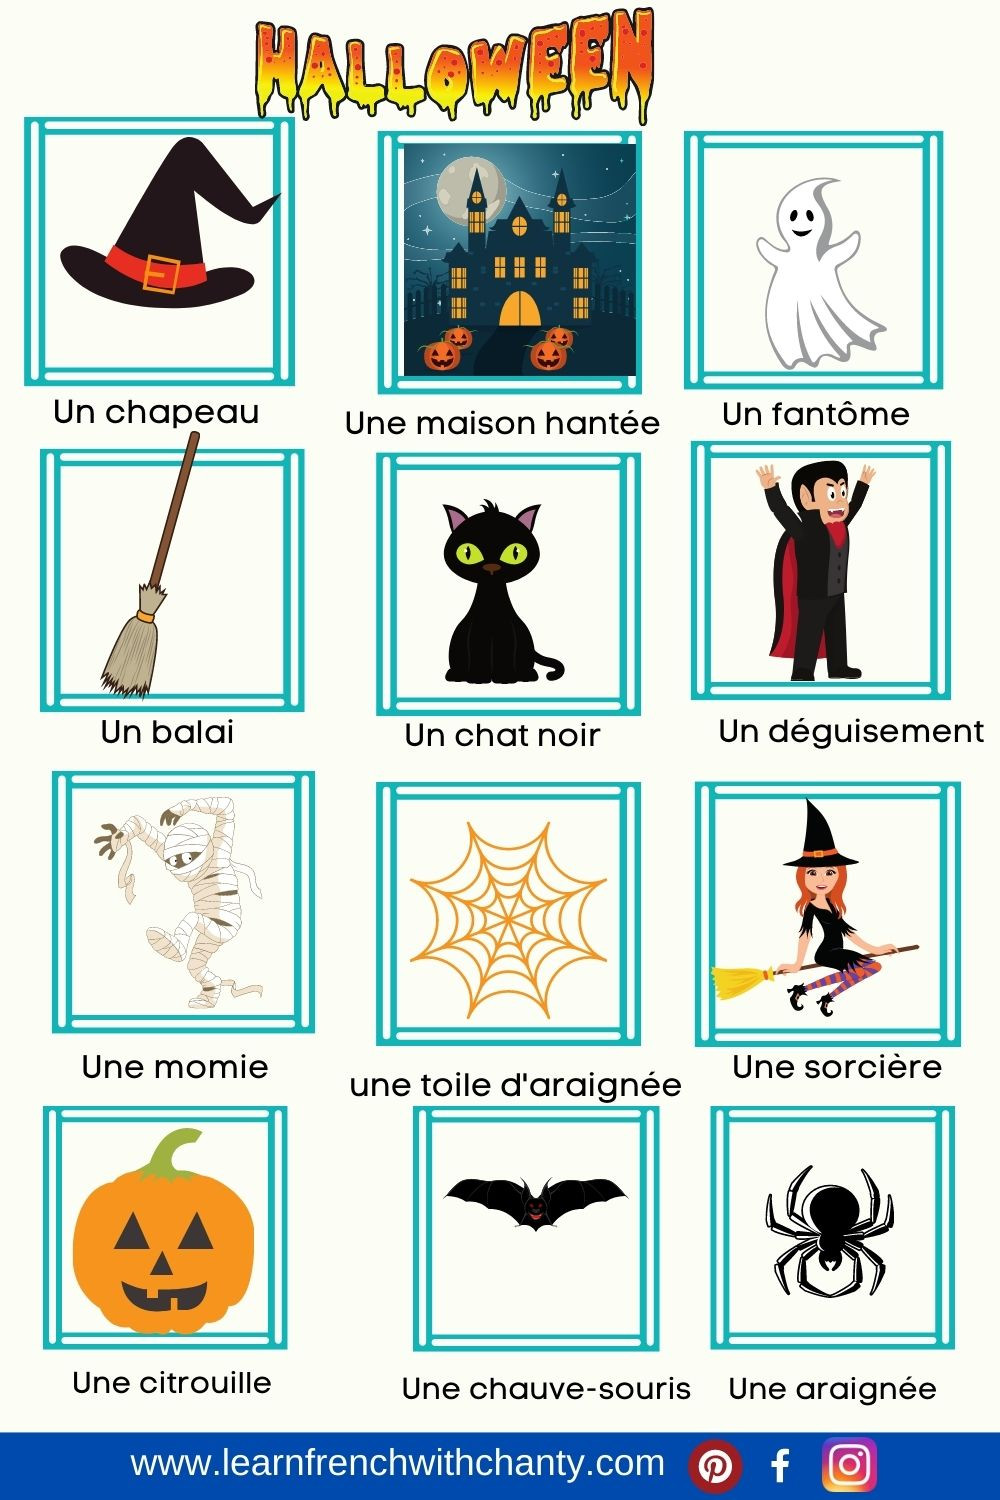 Halloween Vocabulary list in French